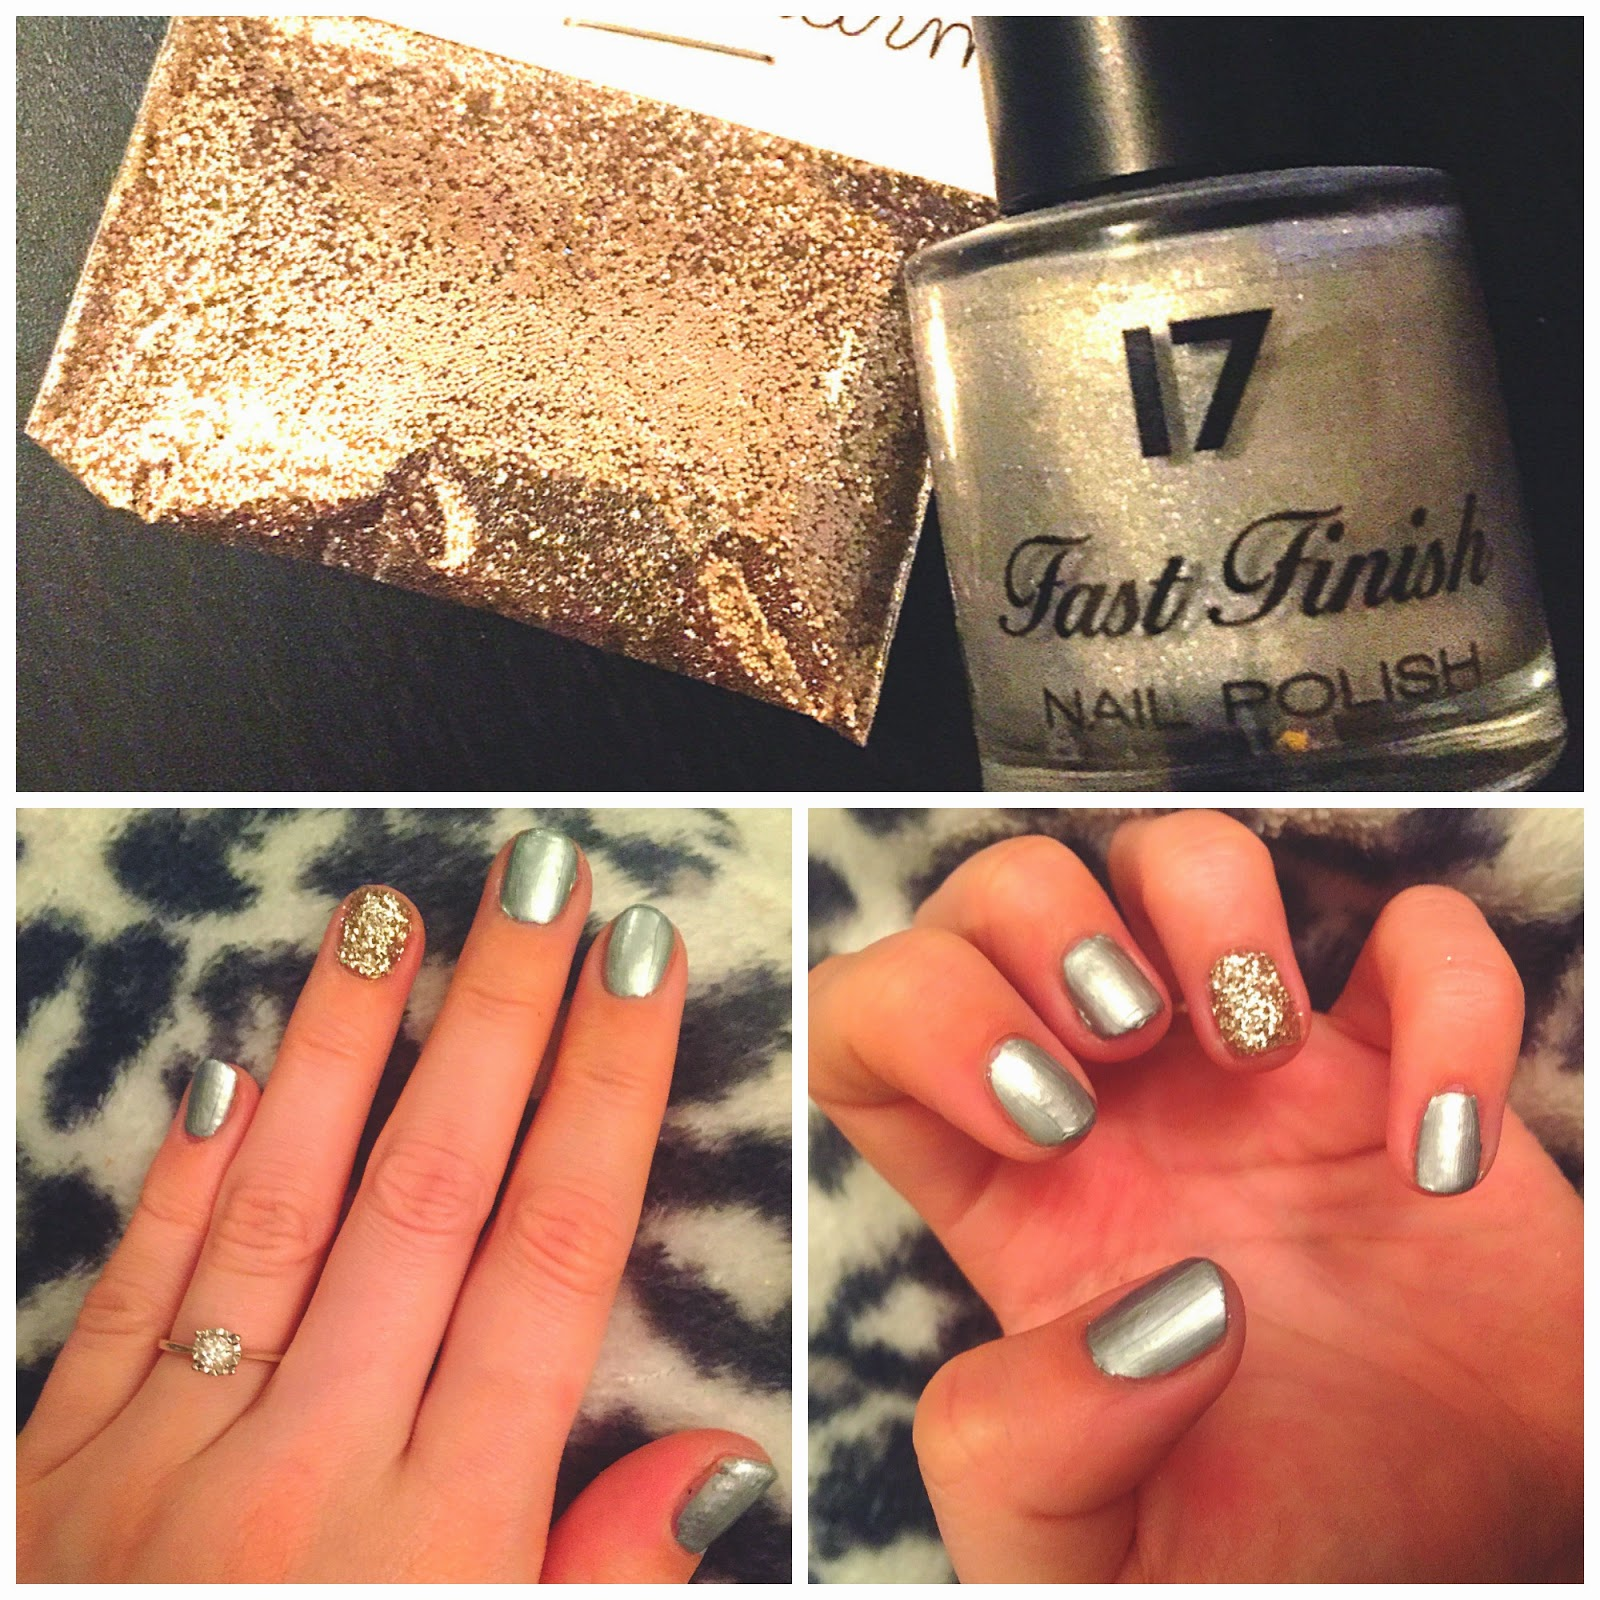 Party nails | Party nail art | Glitter nail art